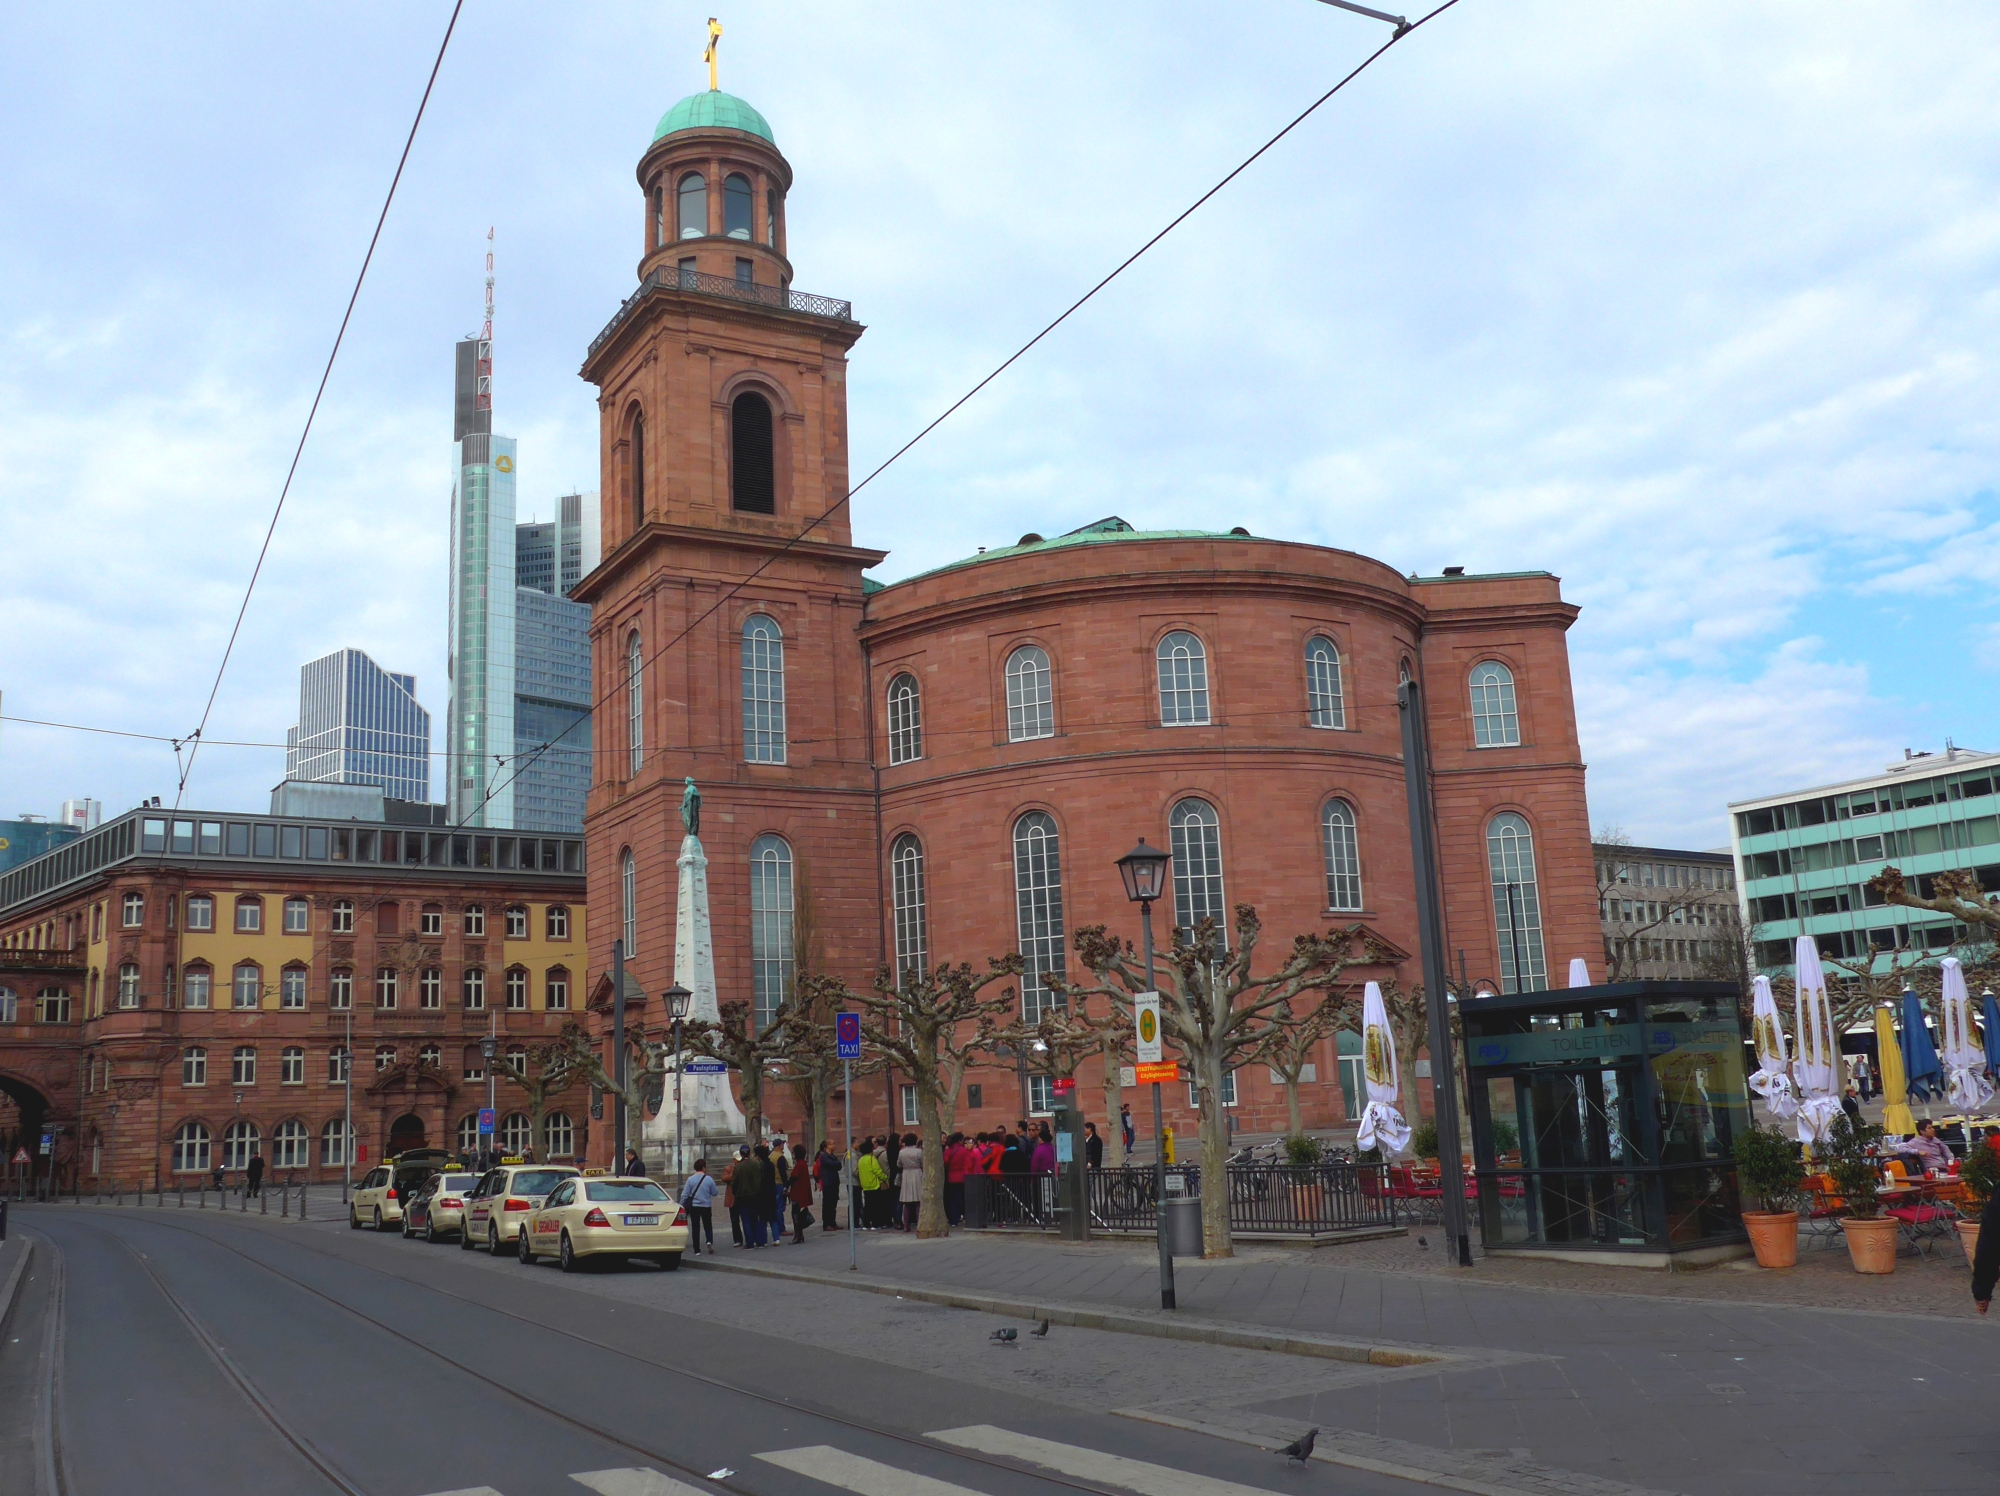 The Paulskirche in Frankfurt/M, Germany